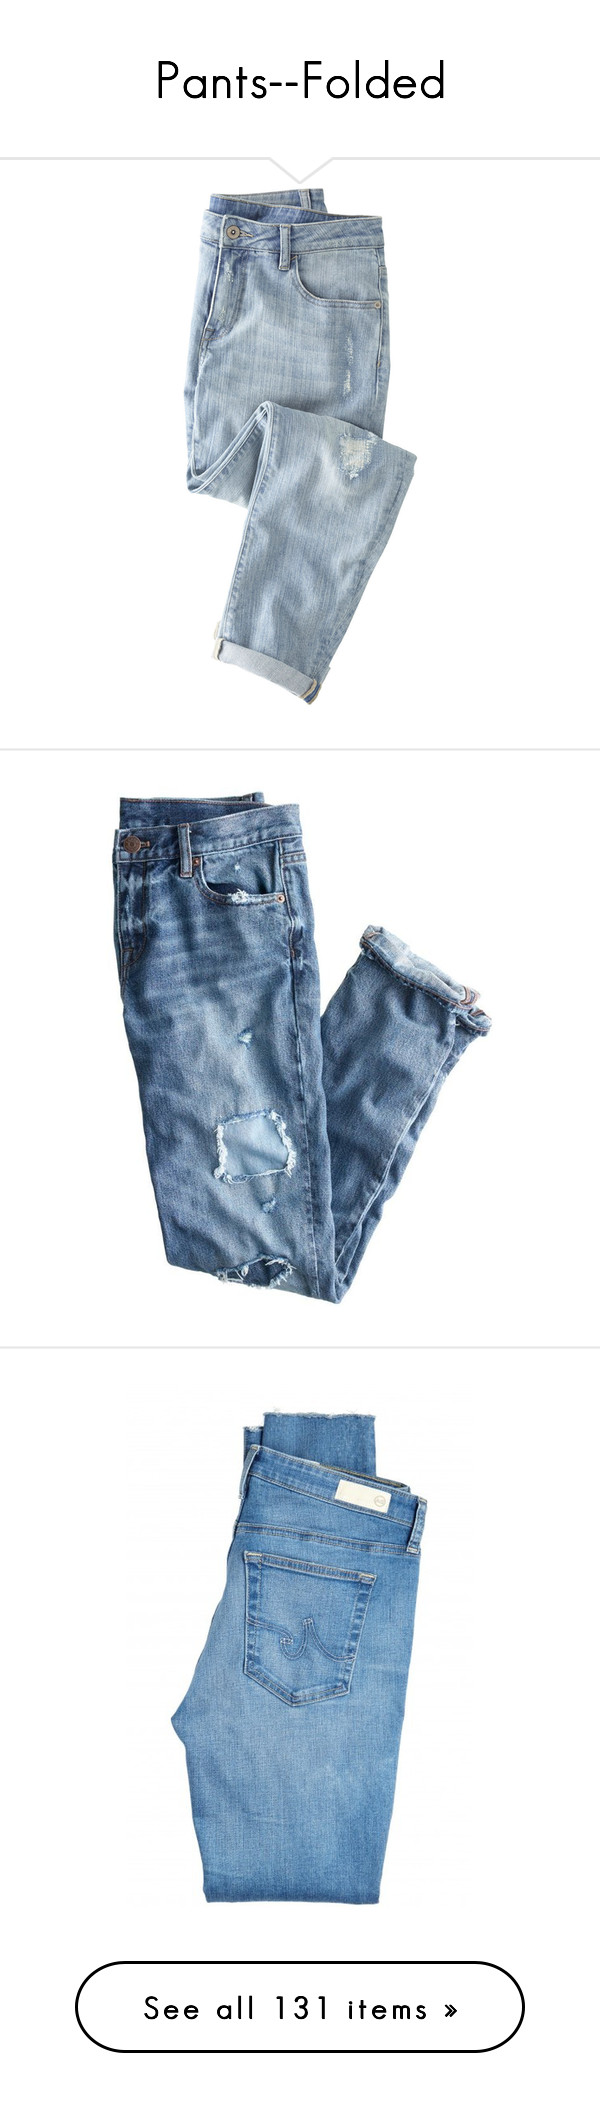 """Pants--Folded"" by heisenberg44 on Polyvore featuring jeans, pants, bottoms, denim, bleached jeans, boyfriend jeans, boyfriend fit jeans, blue jeans, bleached blue jeans and pantalones"